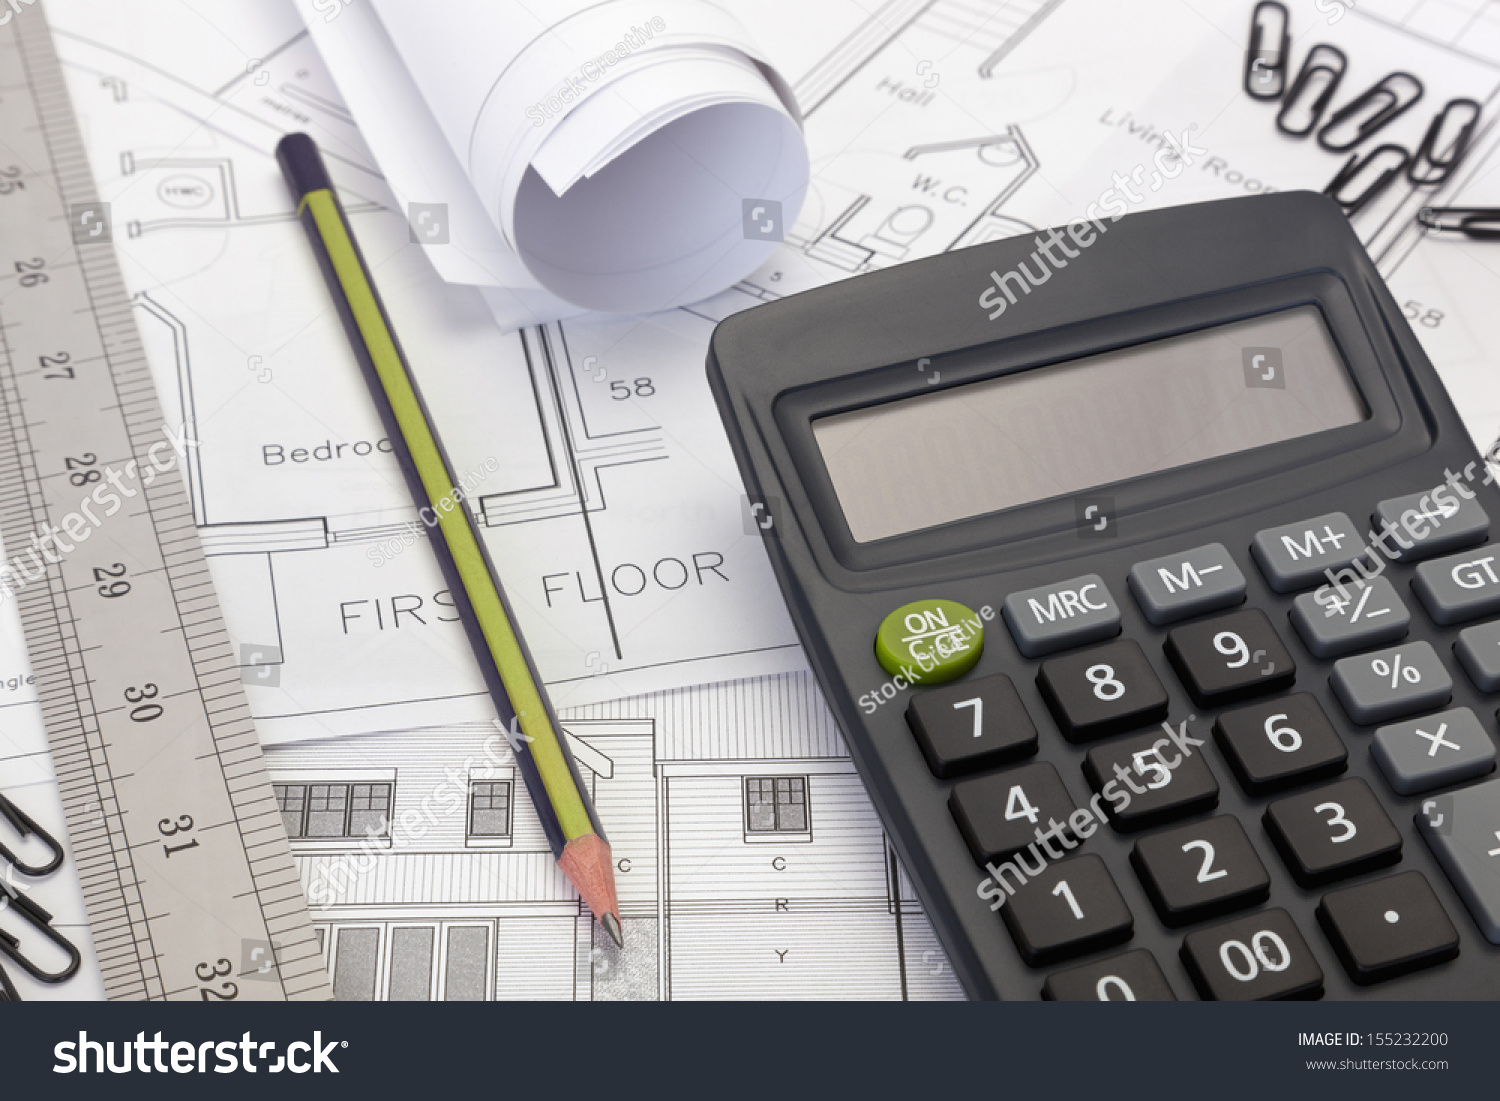 House Plans Calculator Costing Estimate Stock Photo